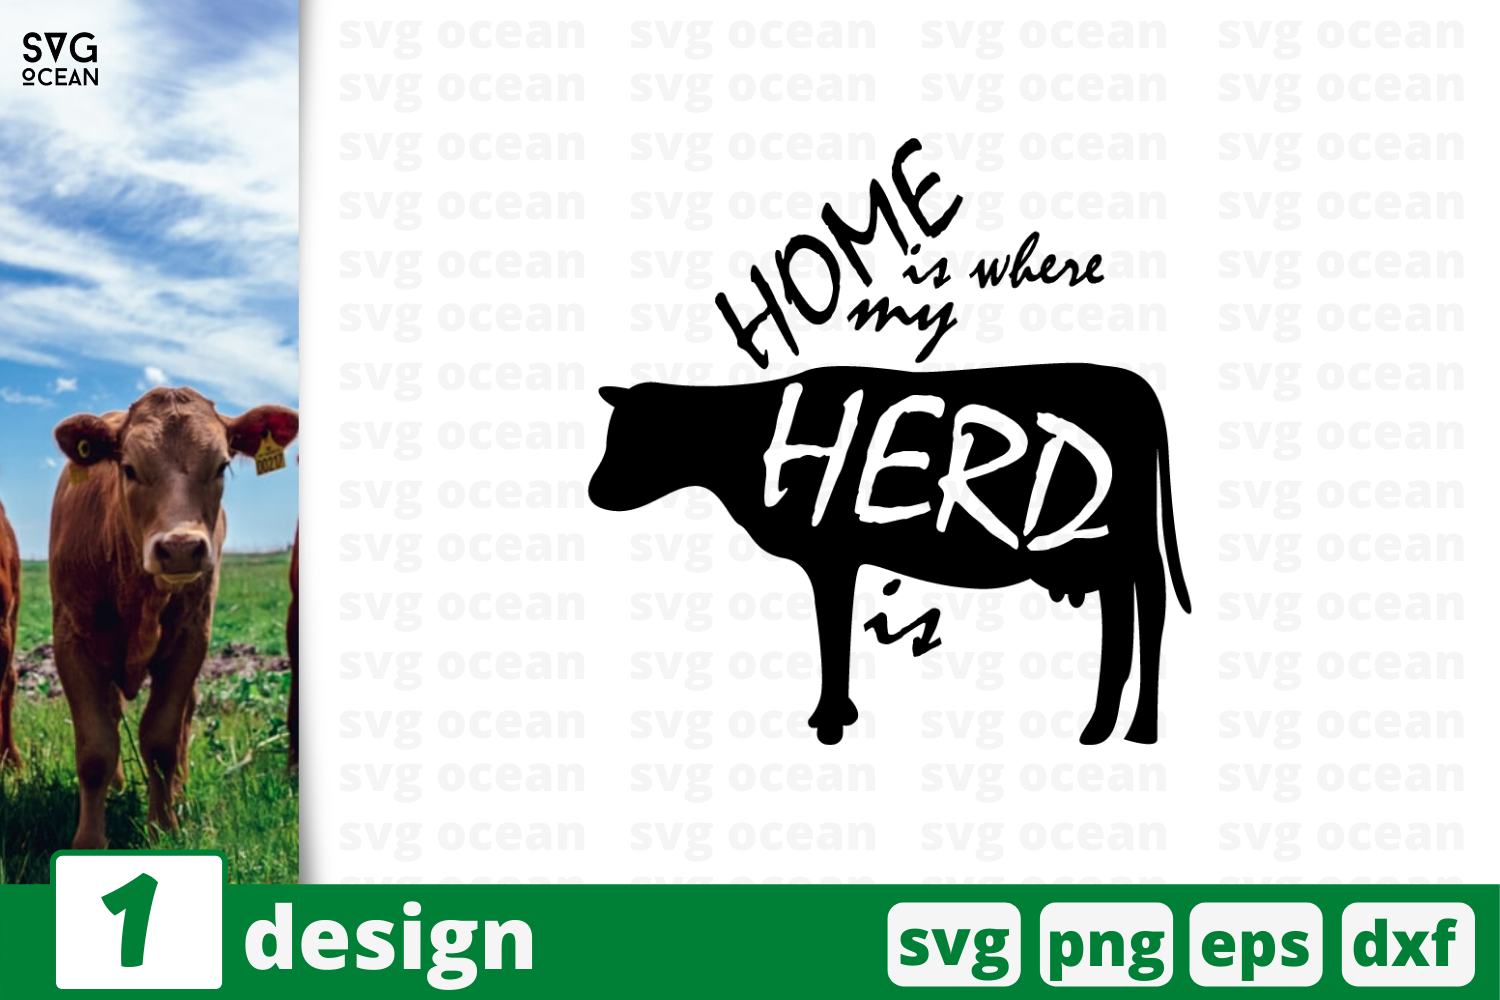 Download Free 1 Cow Farm Quotes Cricut Svg Graphic By Svgocean Creative Fabrica for Cricut Explore, Silhouette and other cutting machines.